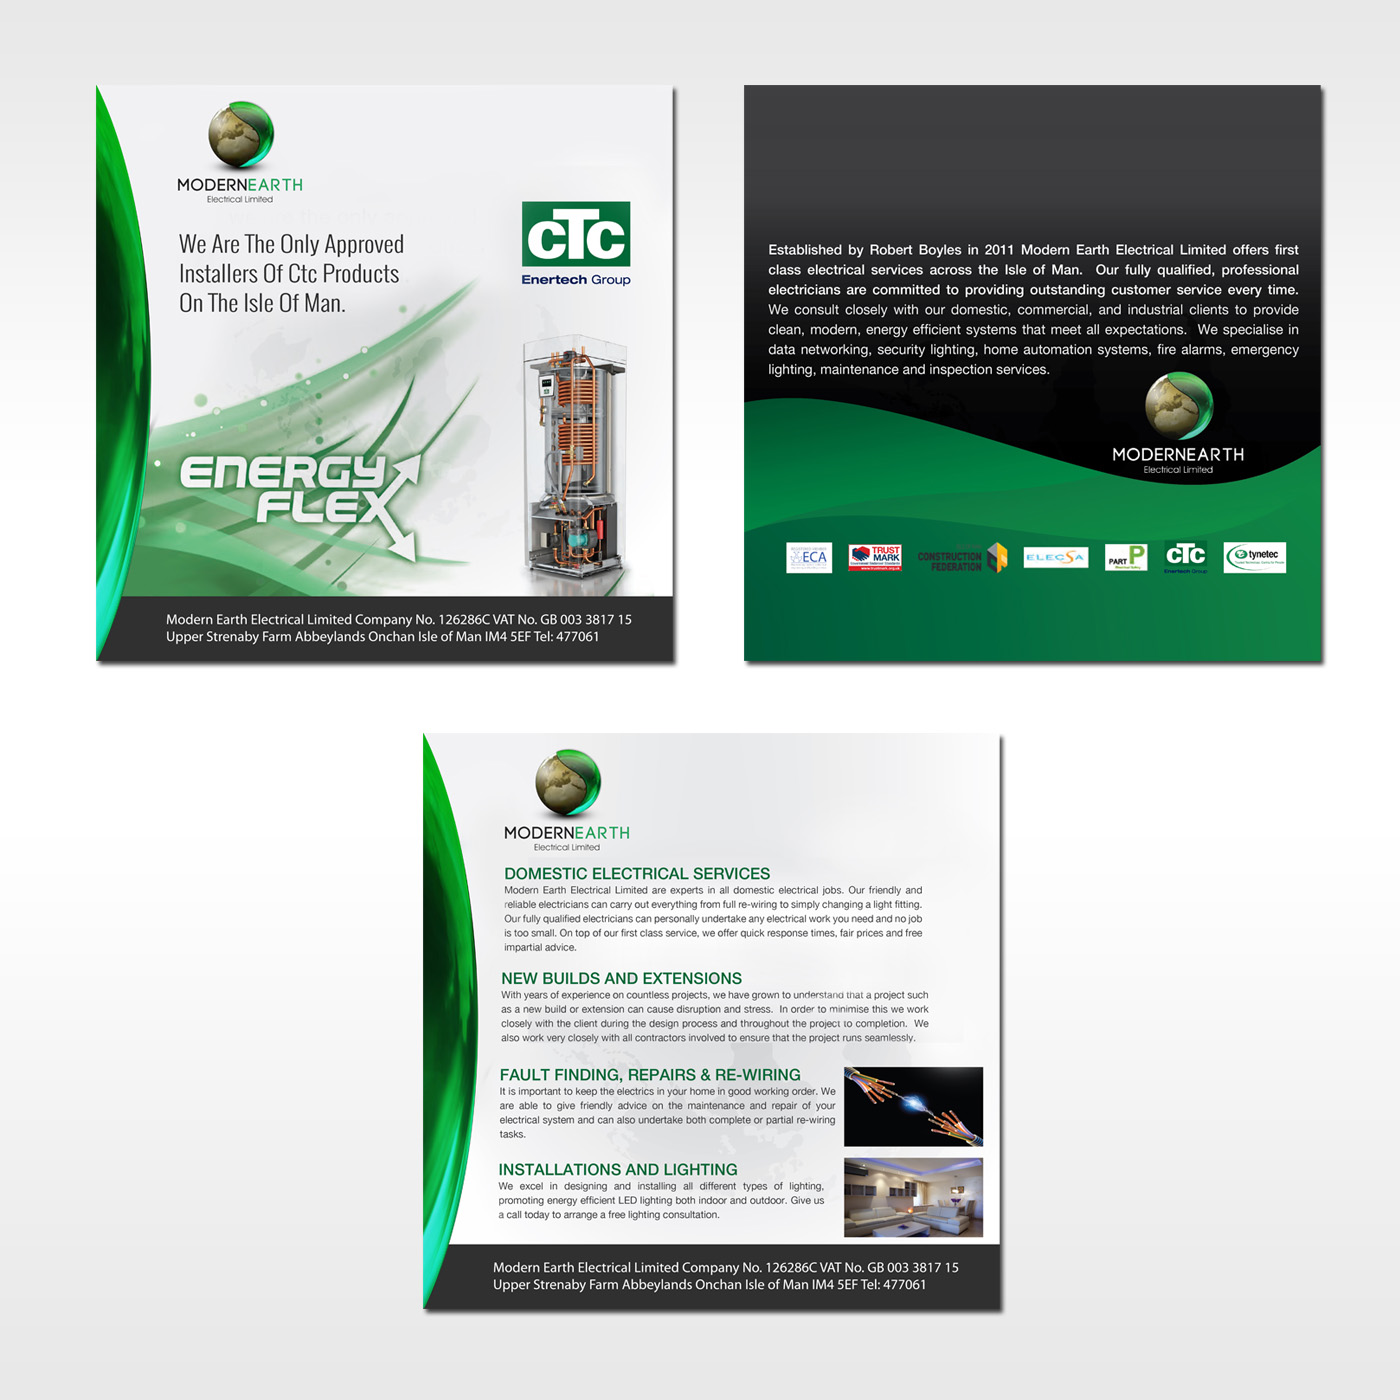 Elegant Modern Electrical Brochure Design For A Company By Commercial Wiring Jobs Debdesign This Project 12658741